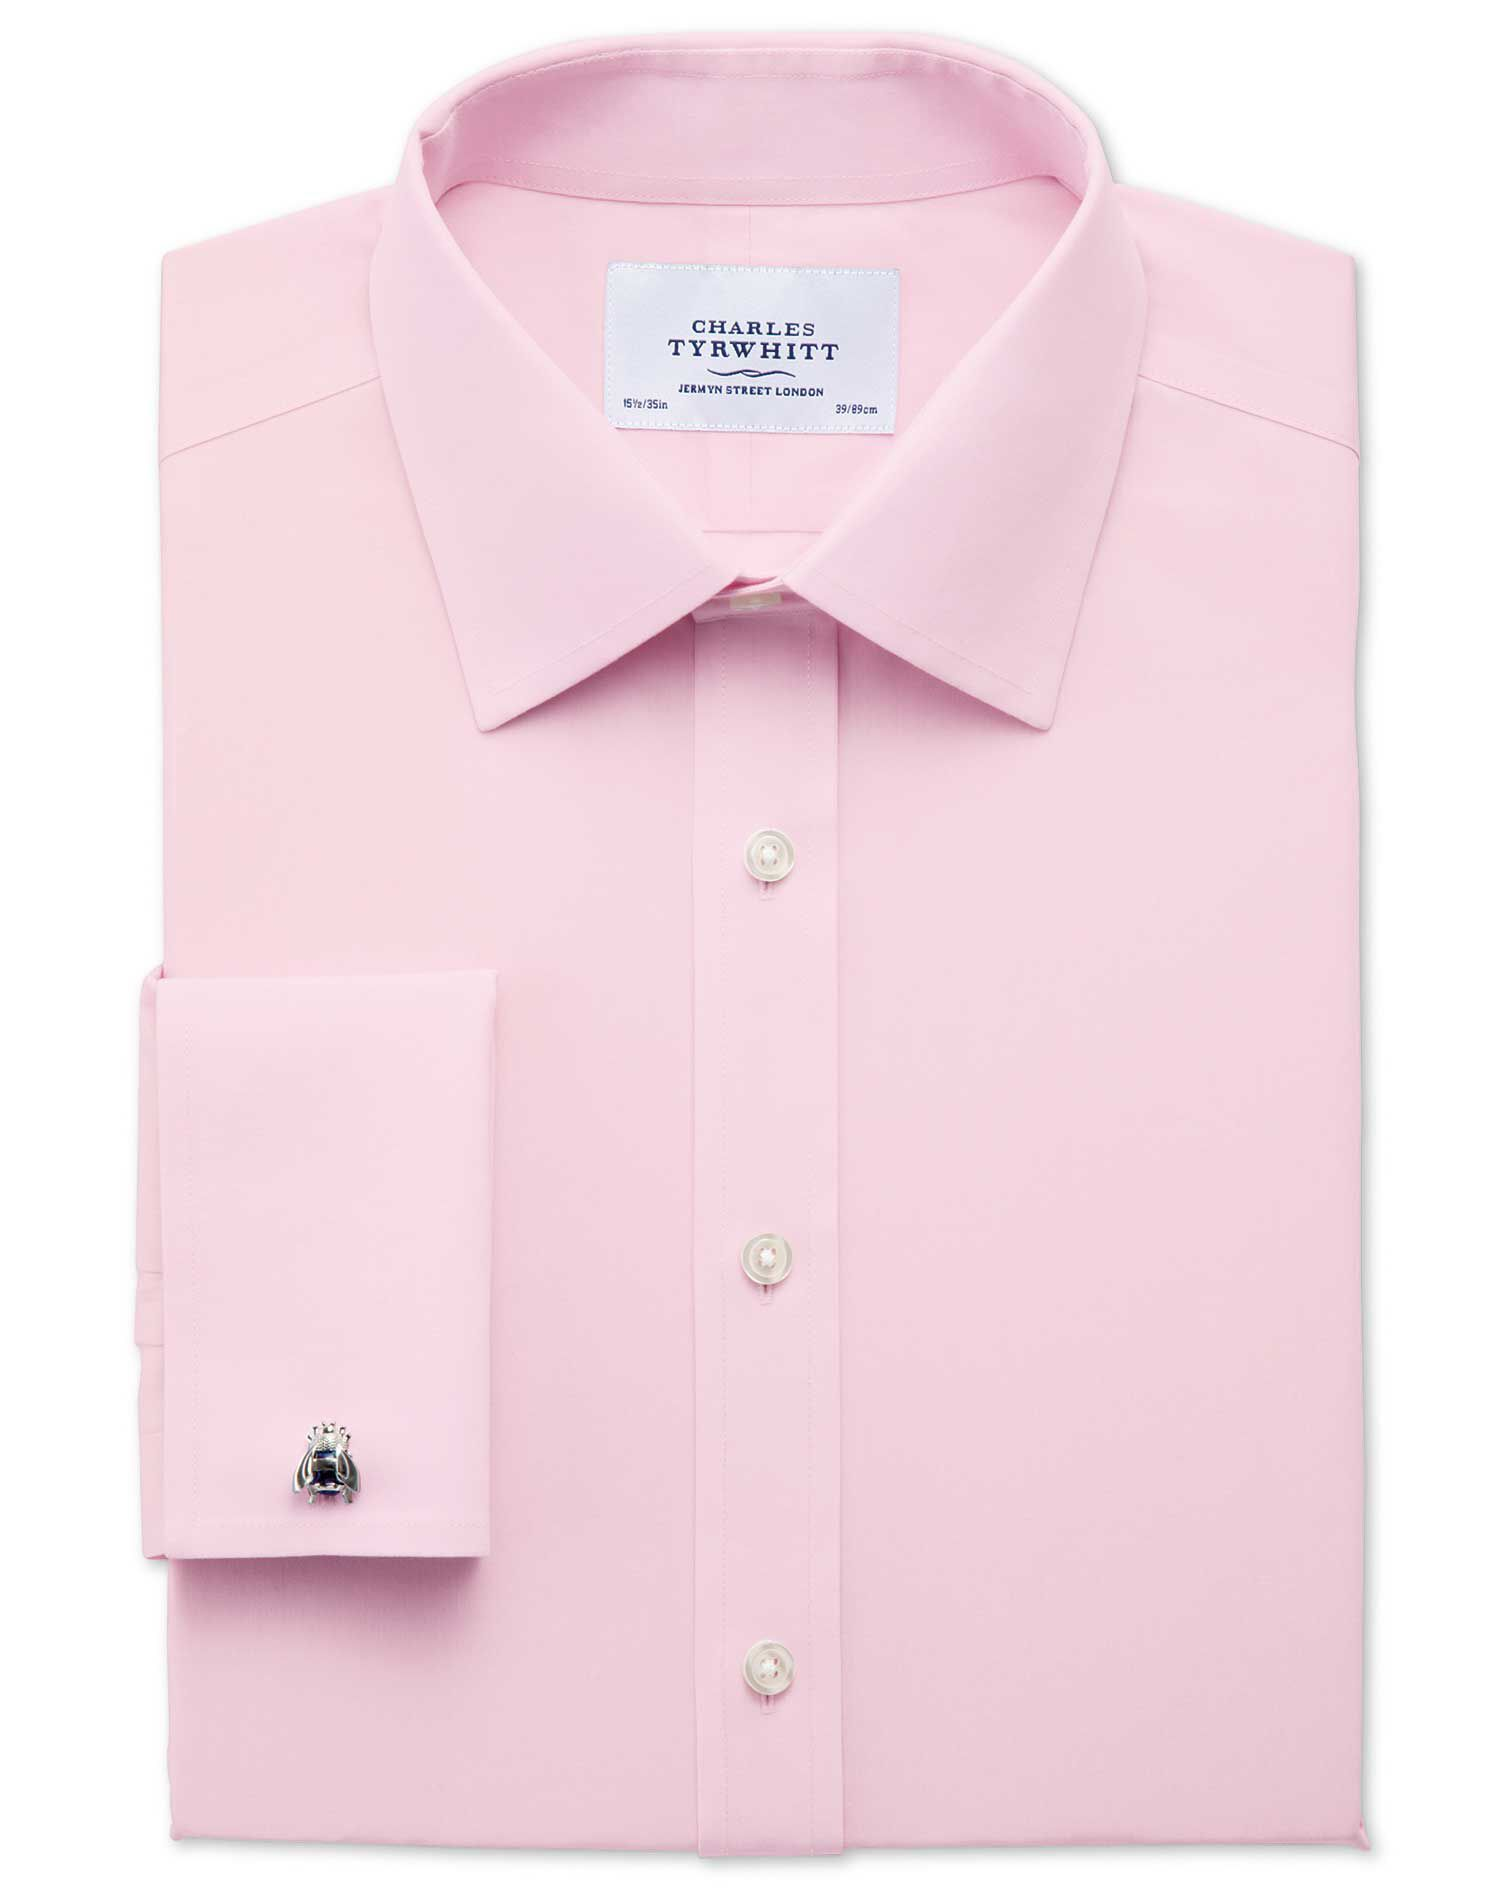 Classic Fit Non-Iron Poplin Light Pink Cotton Formal Shirt Single Cuff Size 16/38 by Charles Tyrwhit